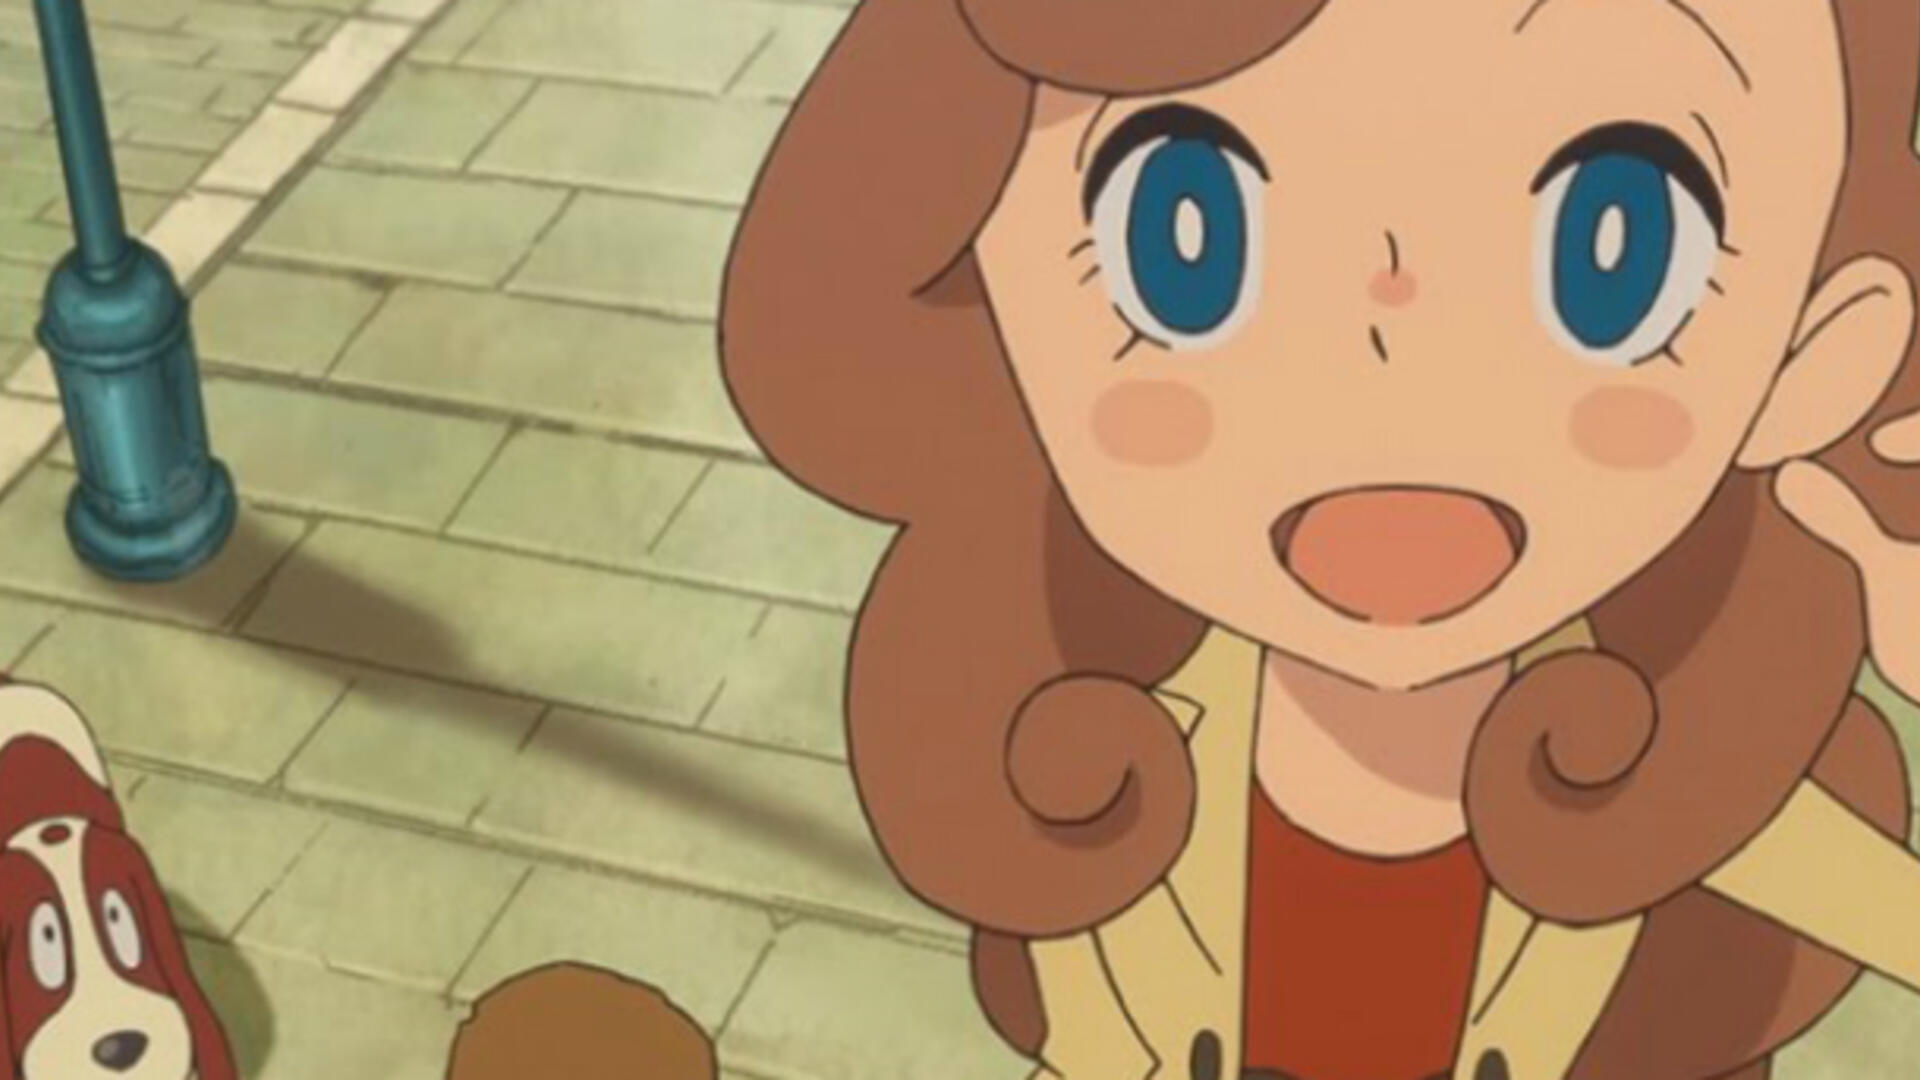 Lady Layton Gets a New Name, Mobile Version Coming Worldwide on July 20